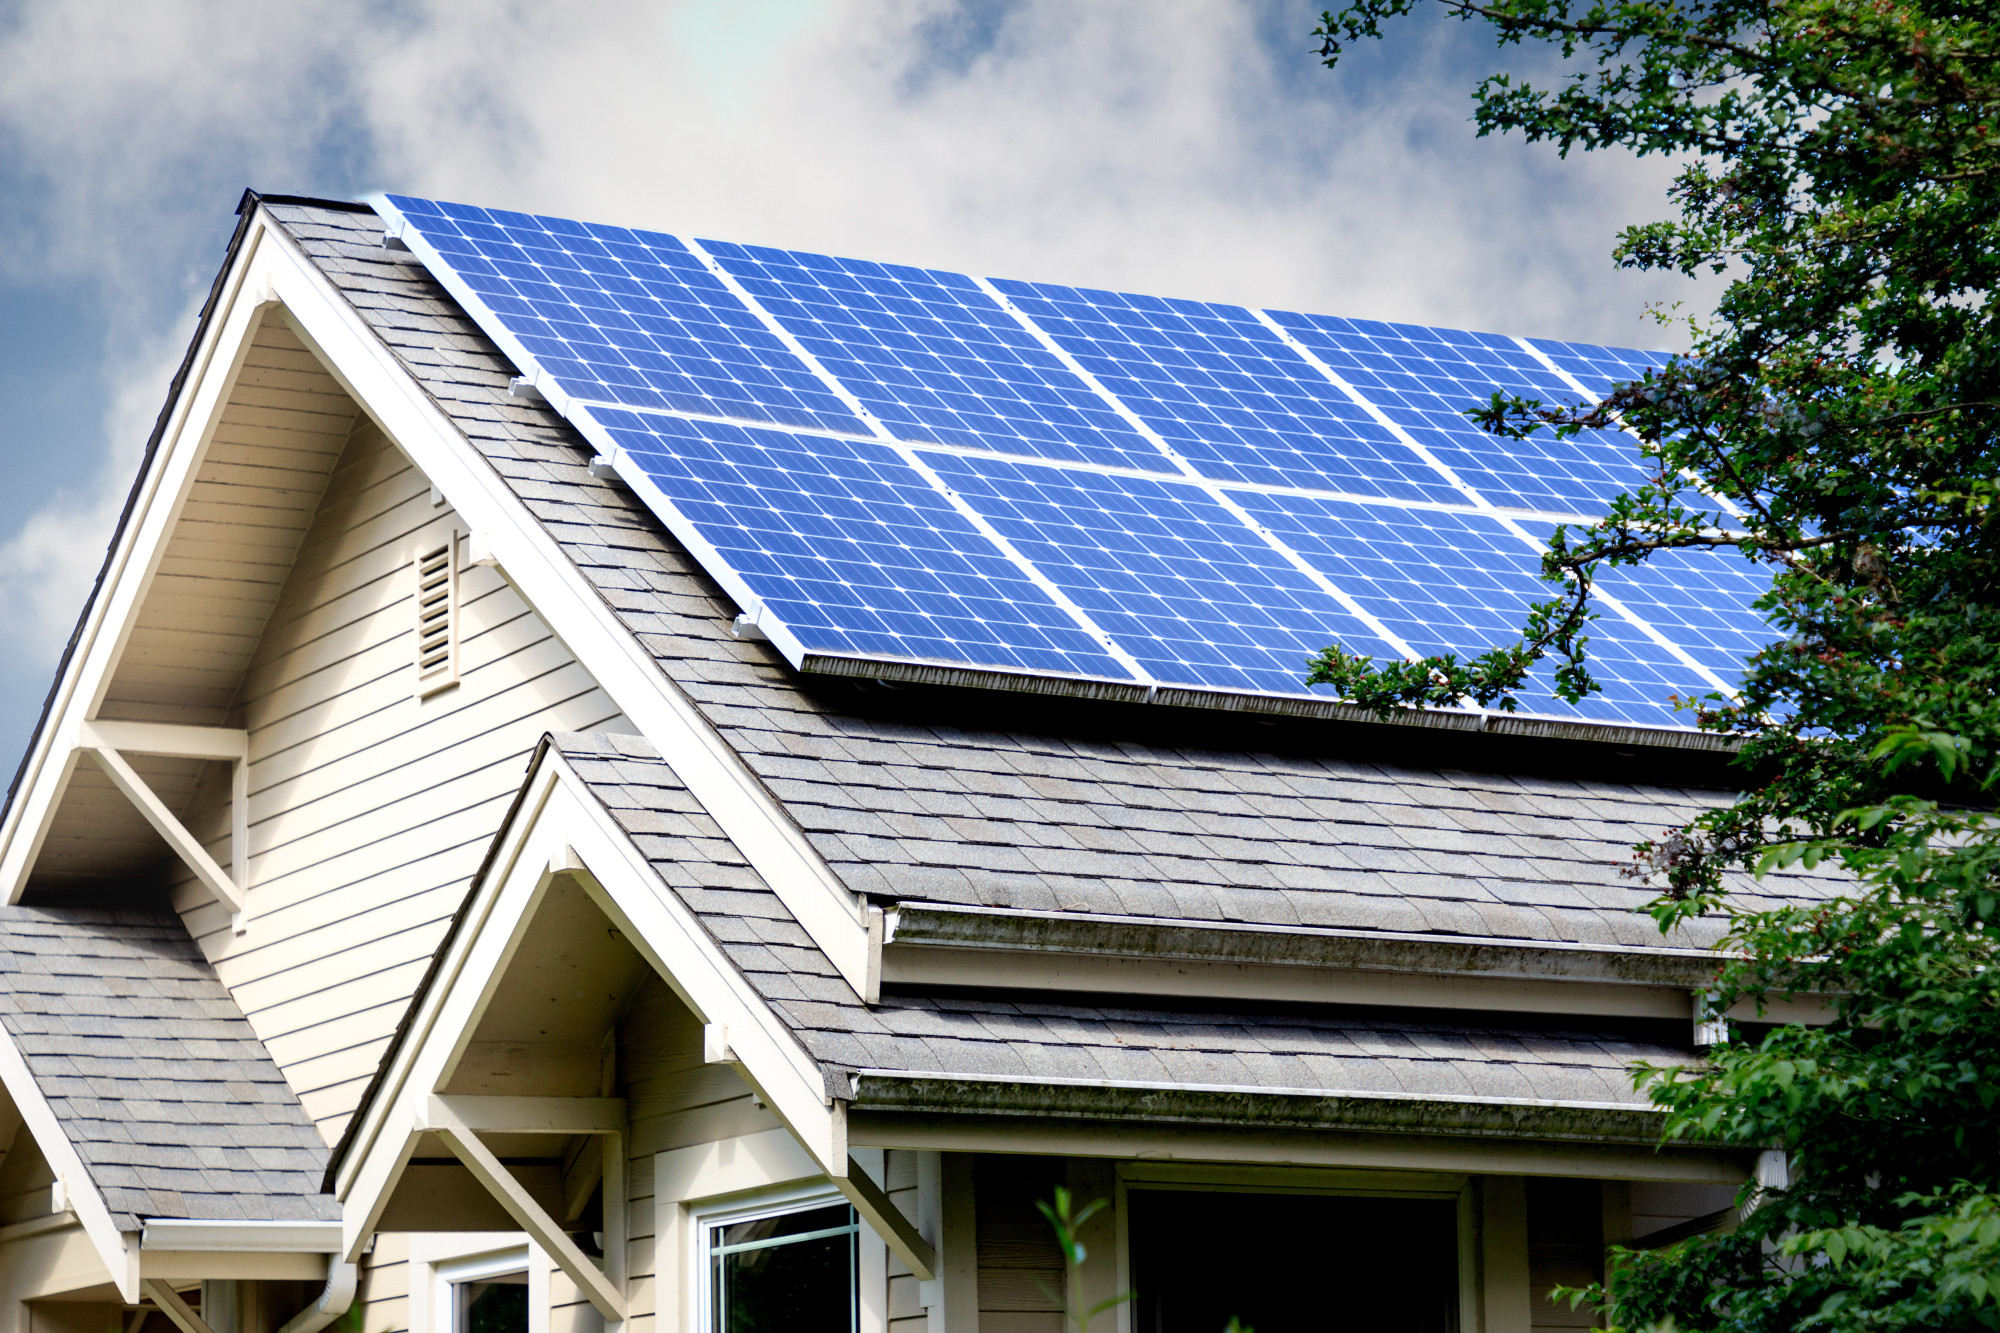 Harnessing the Sun: The Pros and Cons of Monocrystalline Solar Panels